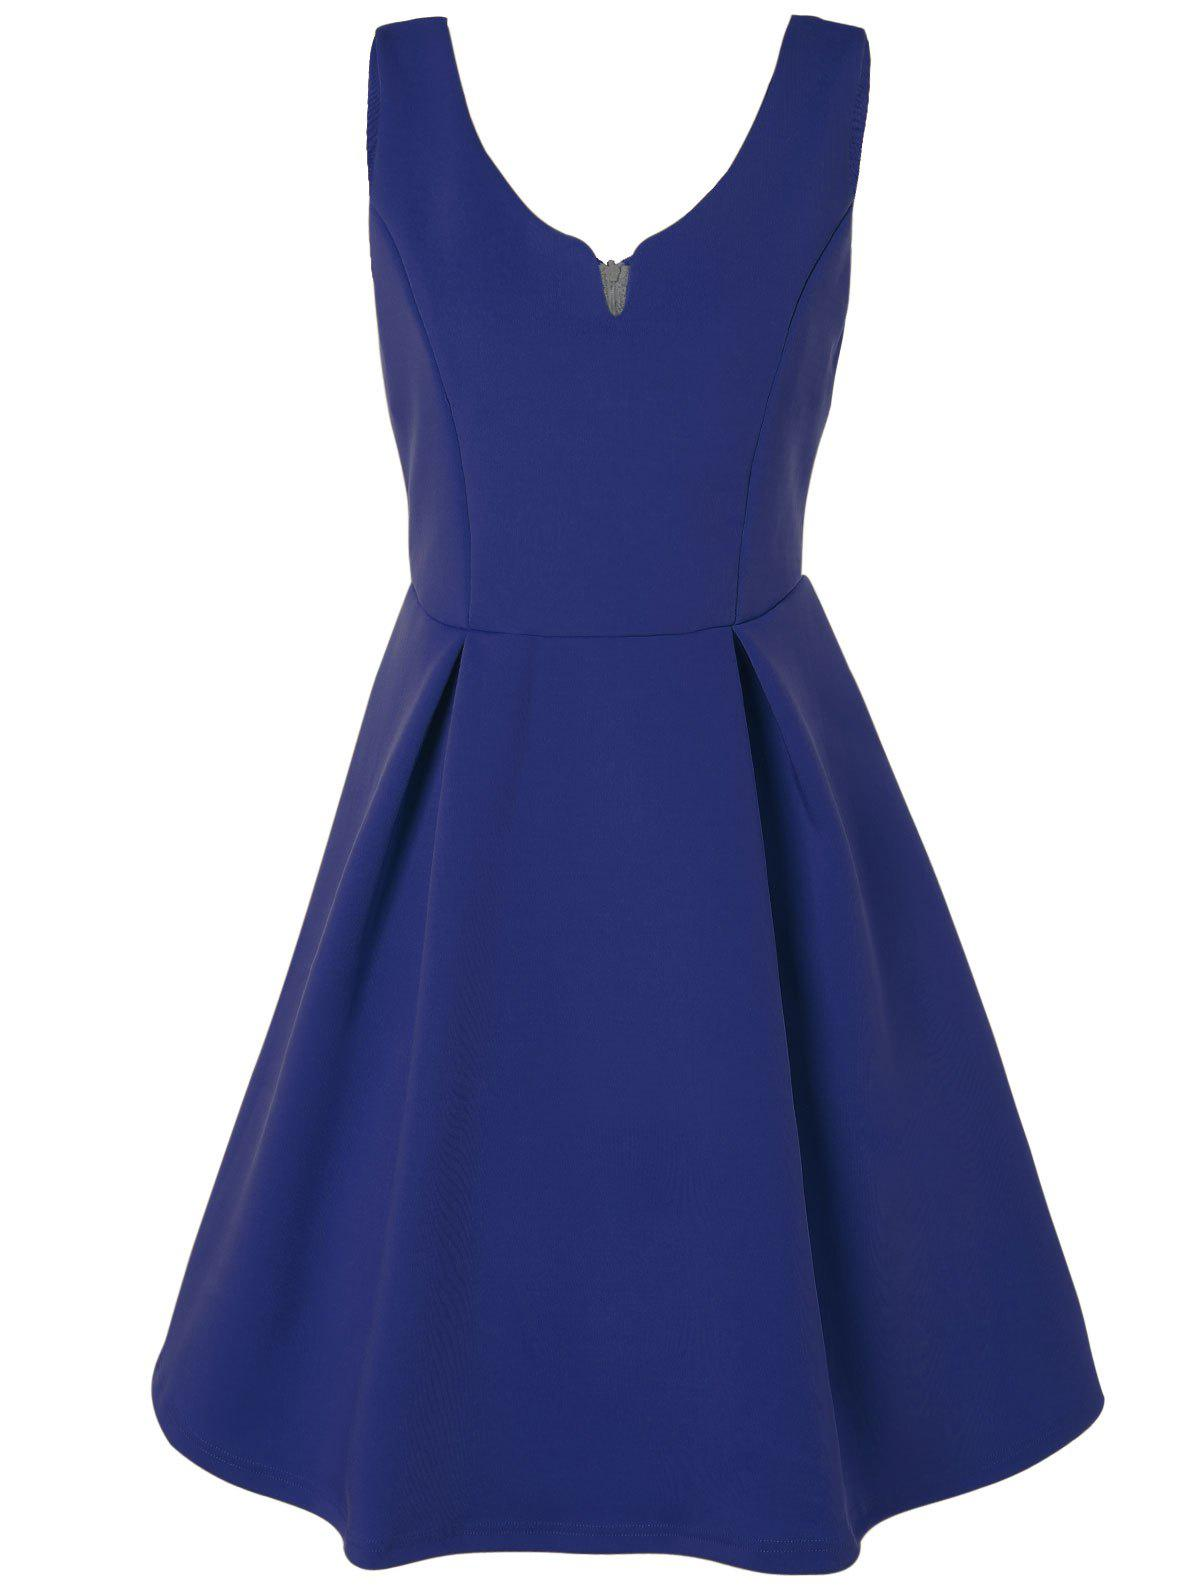 V Neck Fit and Flare Cocktail Dress - BLUE M